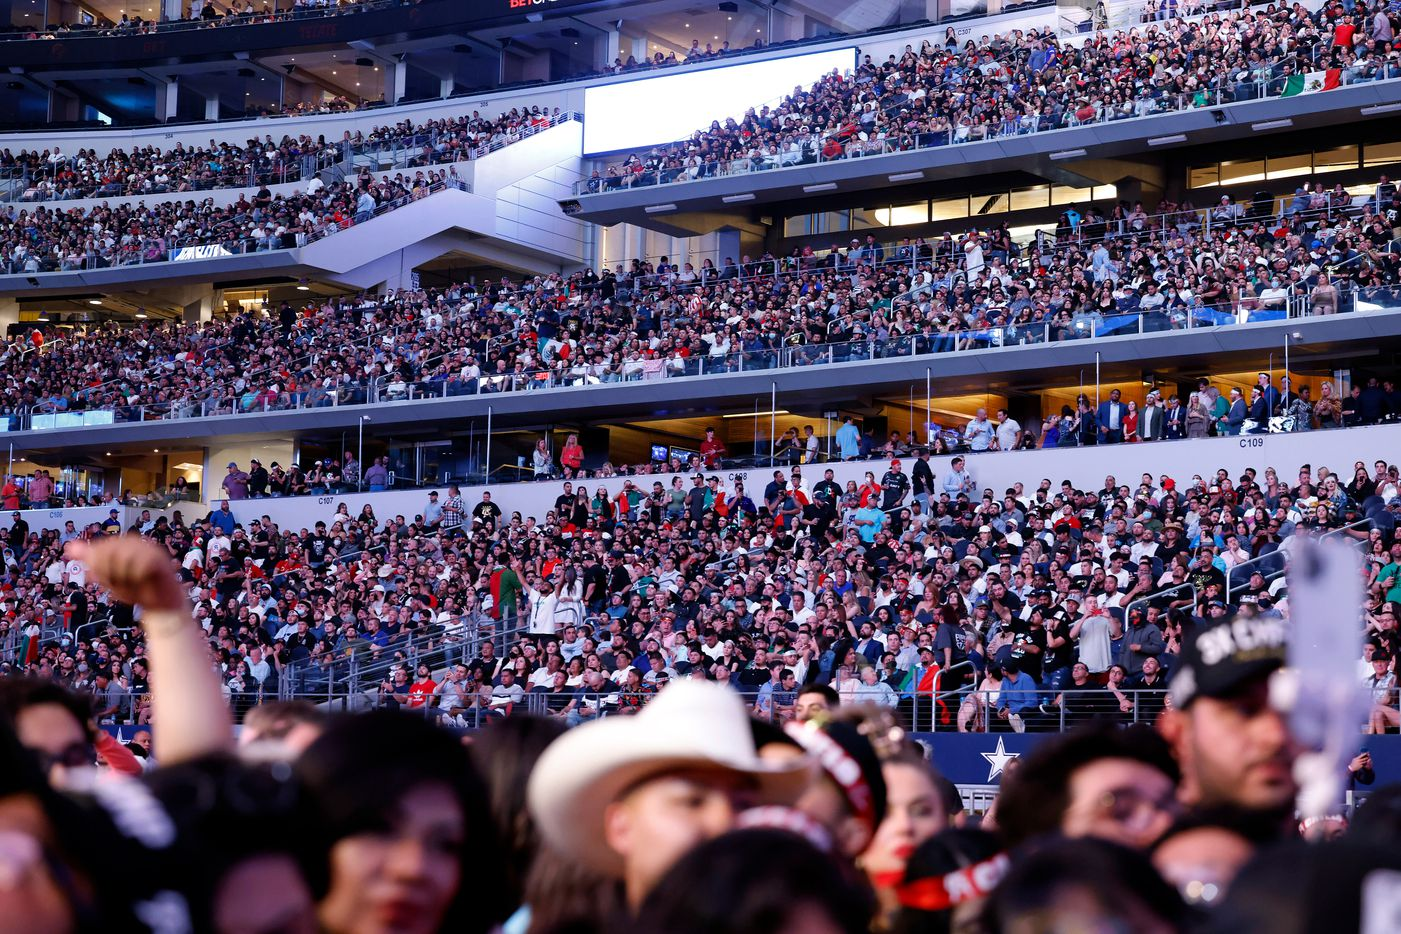 Over 70,000 people, the largest crowd to see a sporting event during the COVID-19 pandemic, filled AT&T stadium to see Mexican boxer Canelo Alvarez defeat British boxer Billy Joe Saunders in their super middleweight title fight at AT&T Stadium in Arlington, Saturday, May 8, 2021. Saunders couldn't go on because of an eye injury. (Tom Fox/The Dallas Morning News)